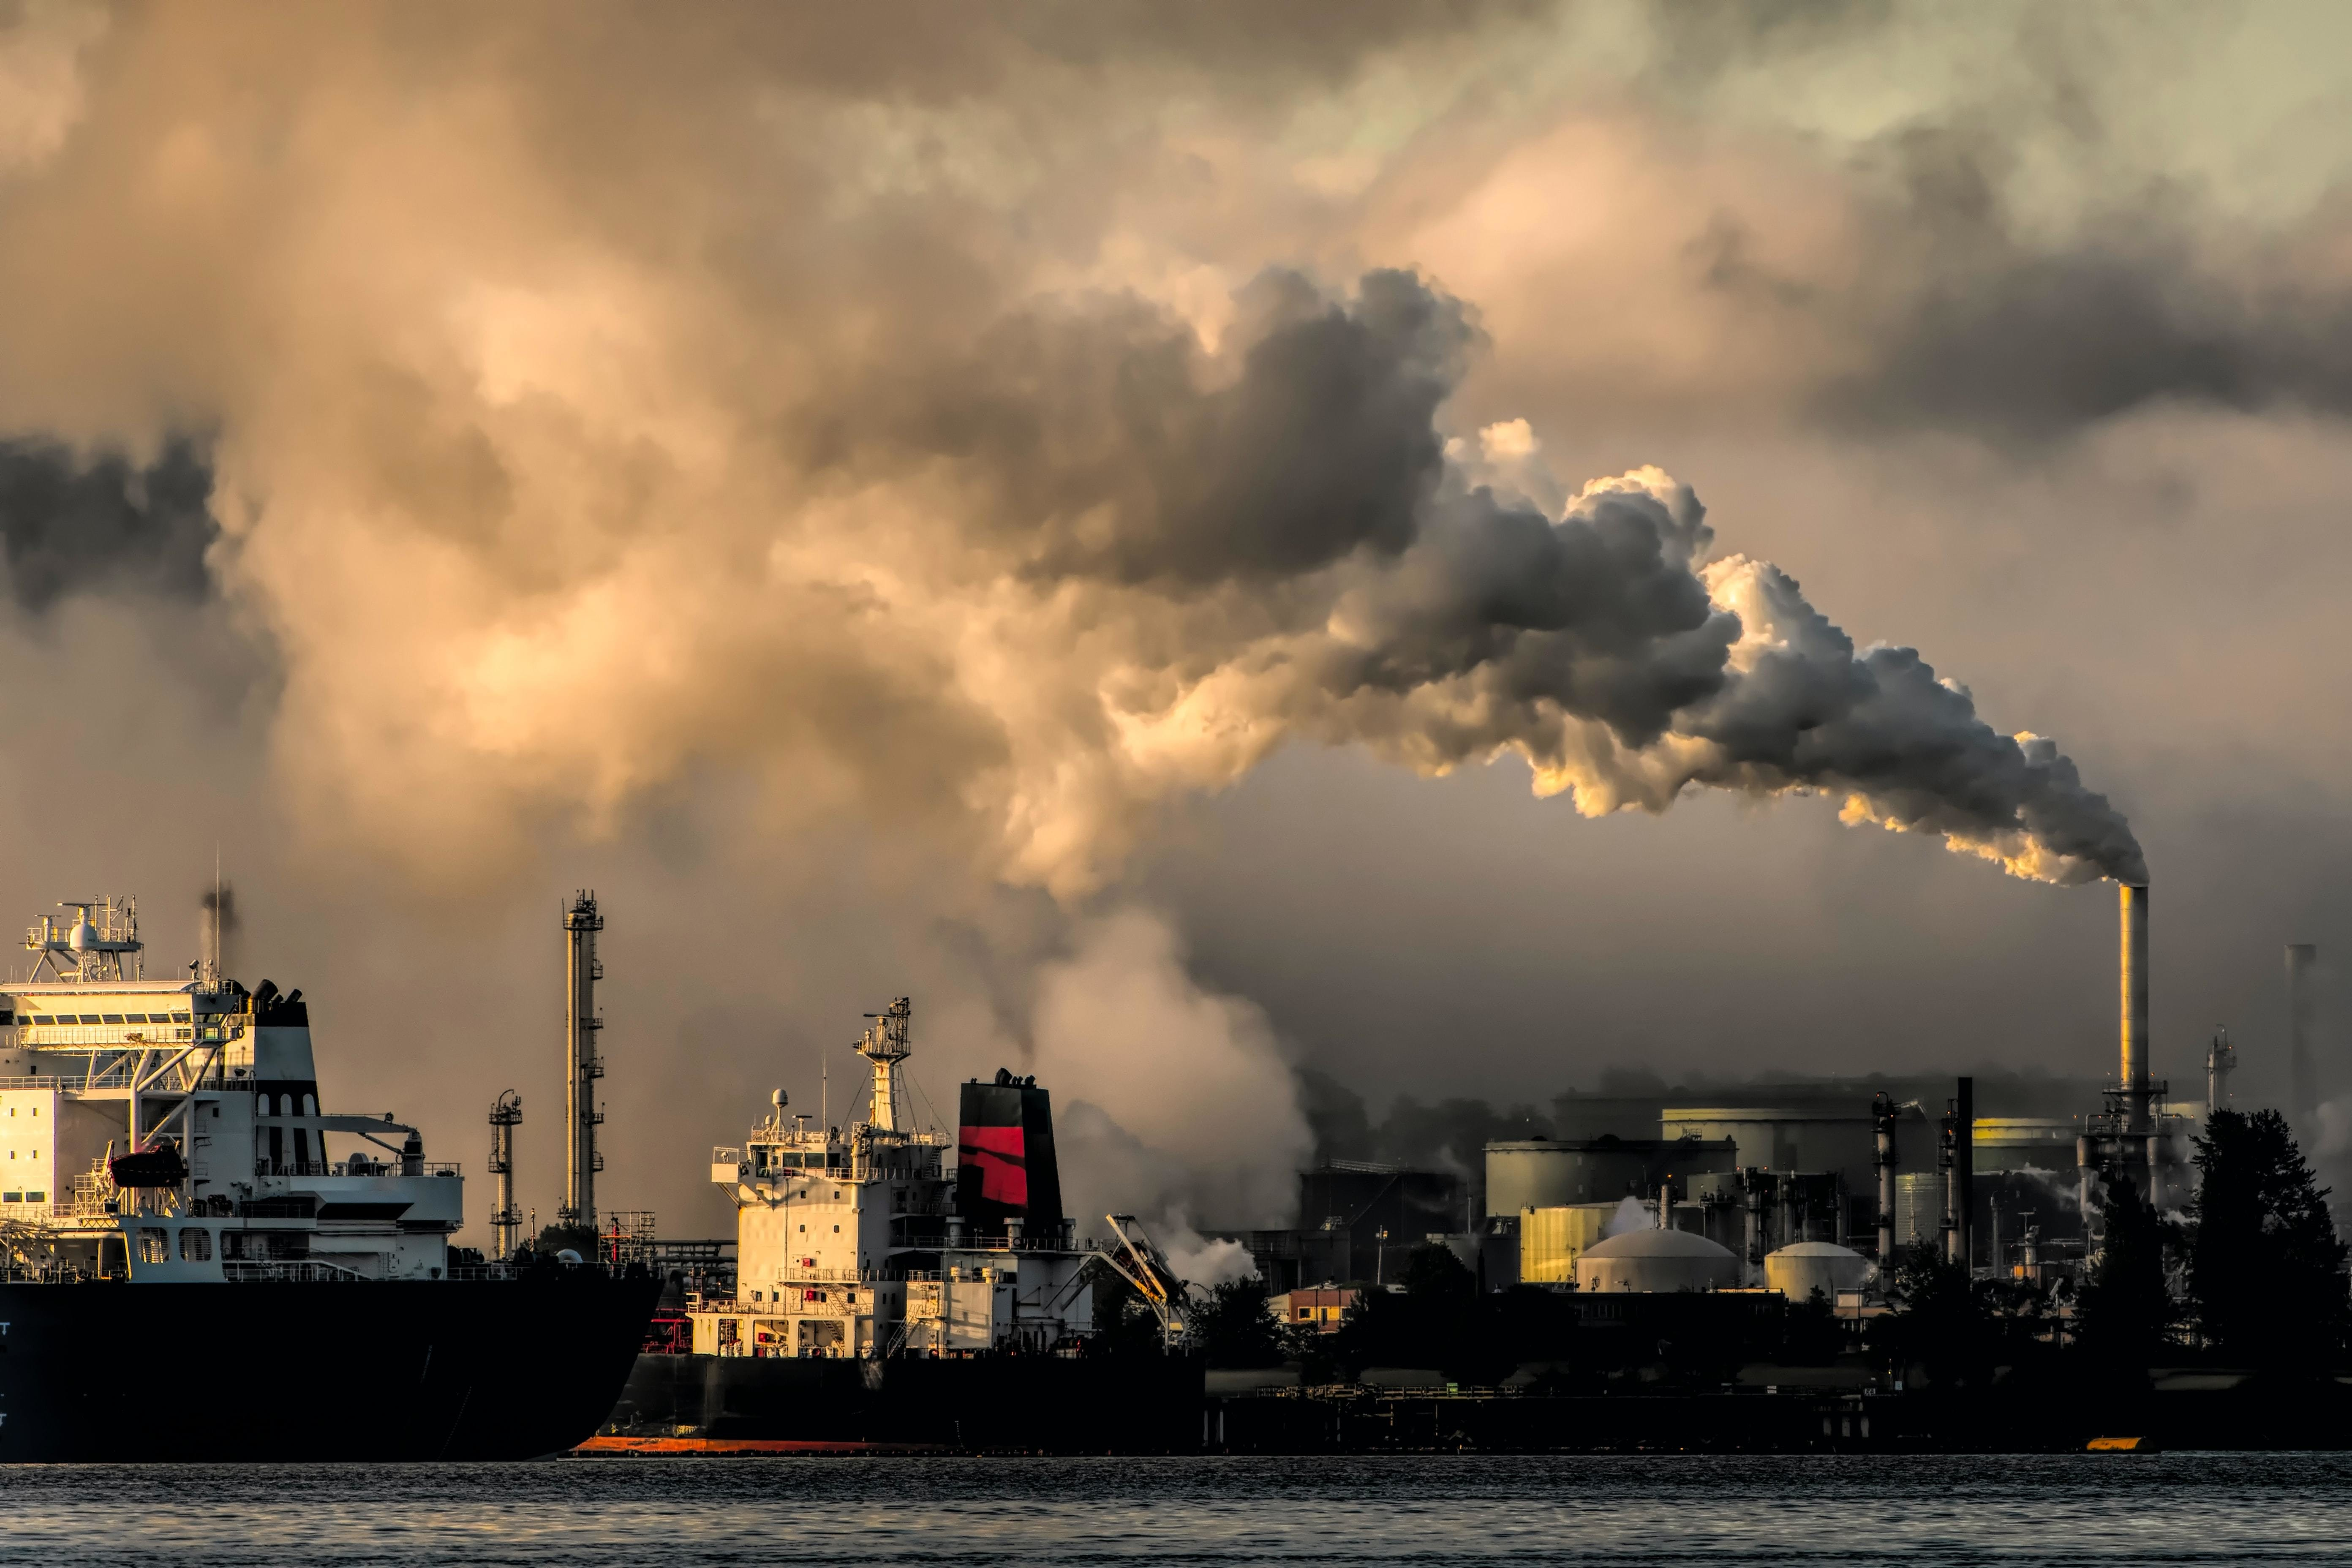 air pollution, shown coming out of this factory, can be very damaging to human health